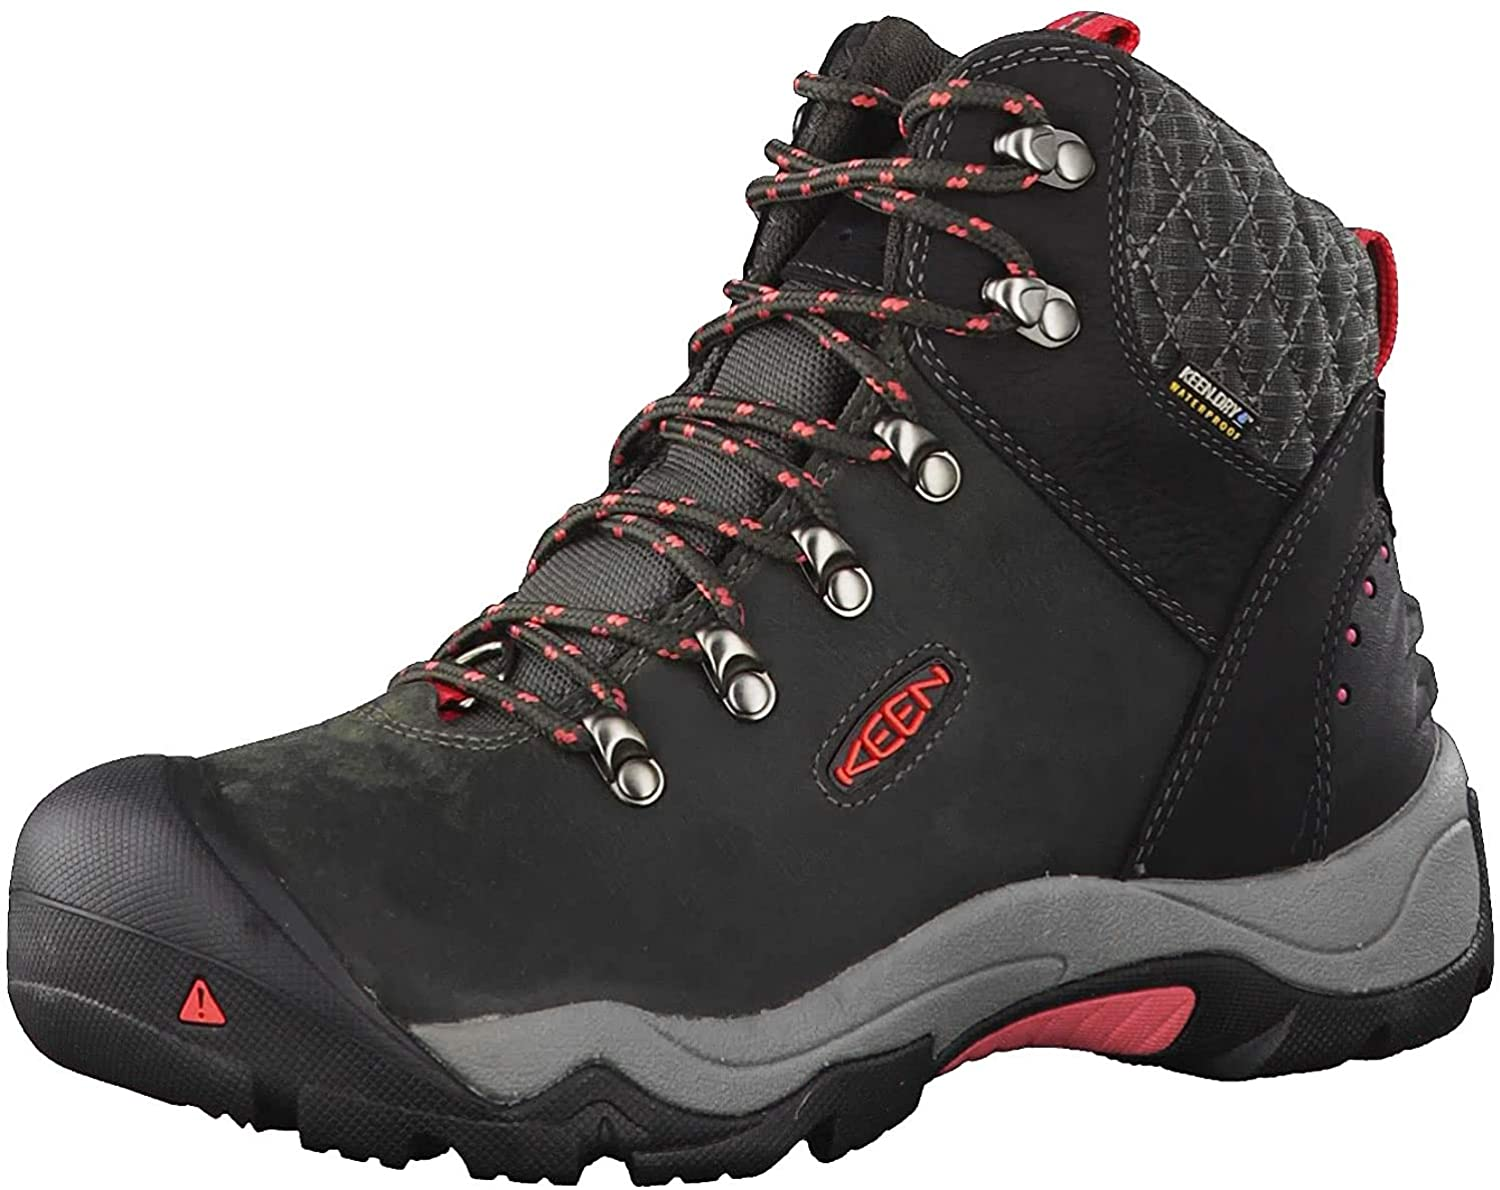 KEEN Safety and trust Women's Revel III Cold Max 40% OFF Hiking Boot Weather